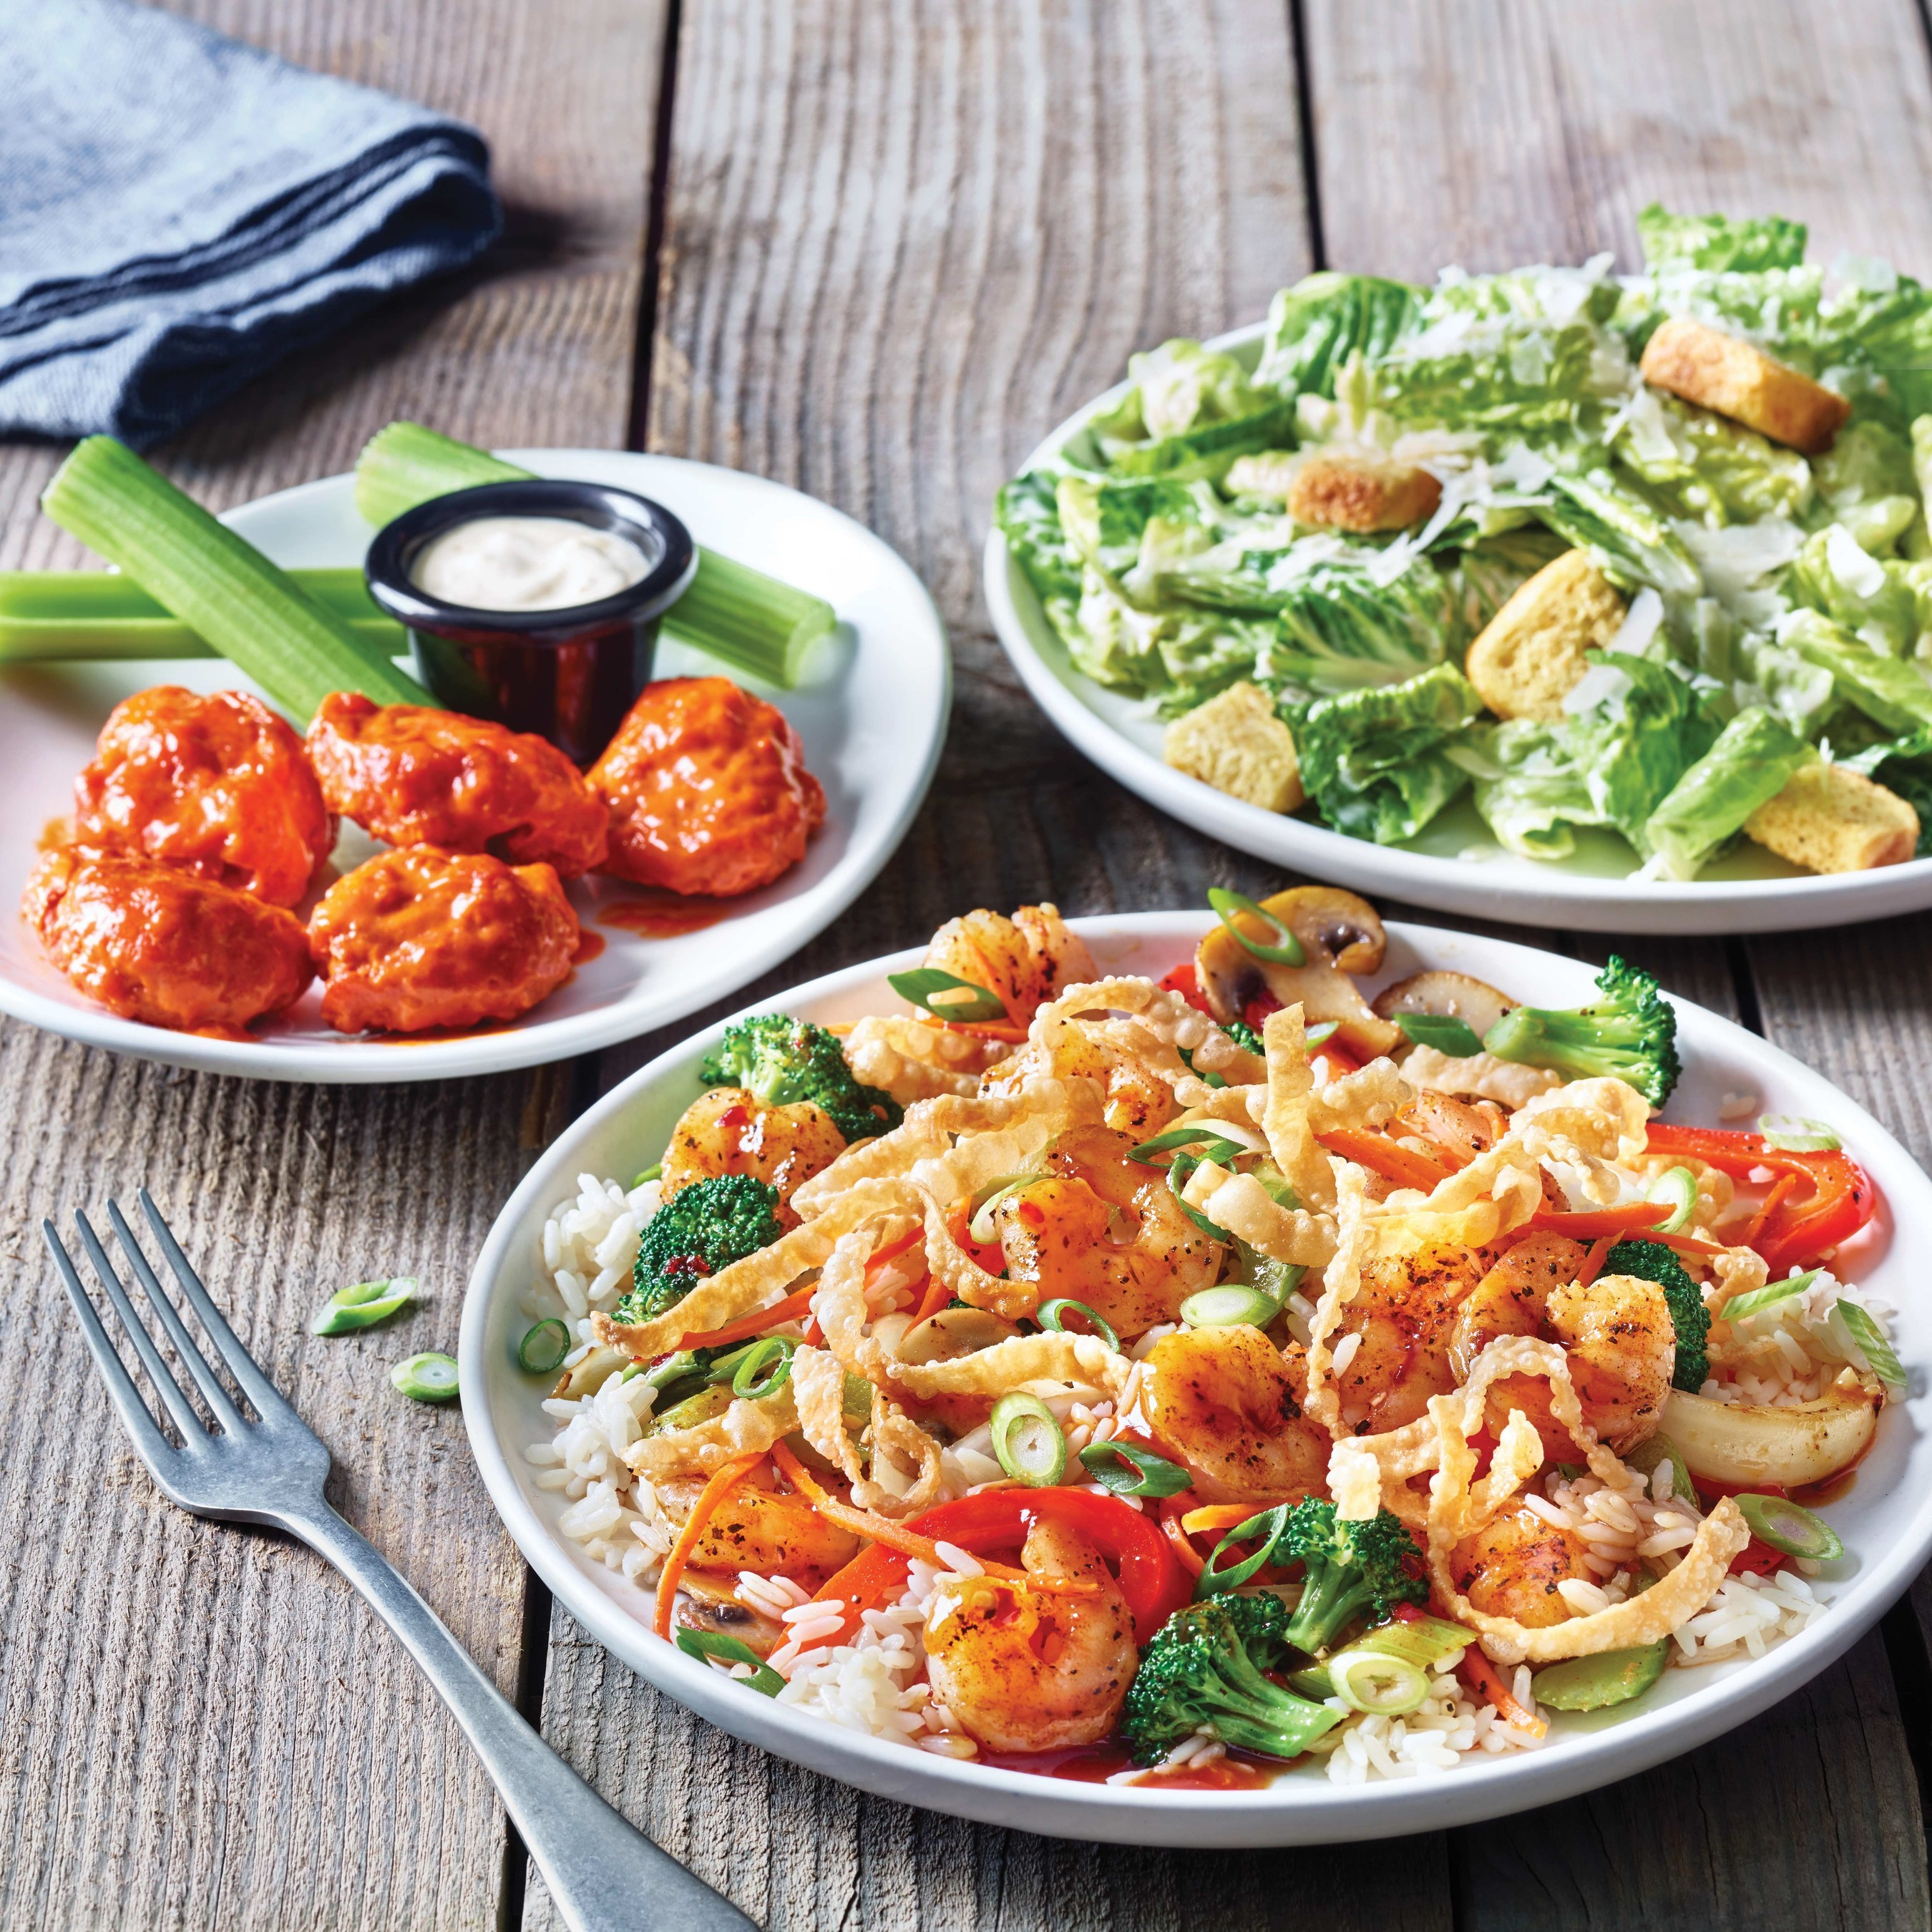 Applebee's NEW 3-Course Meal includes an appetizer, side salad and entrée starting at $11.99 now for a limited time.